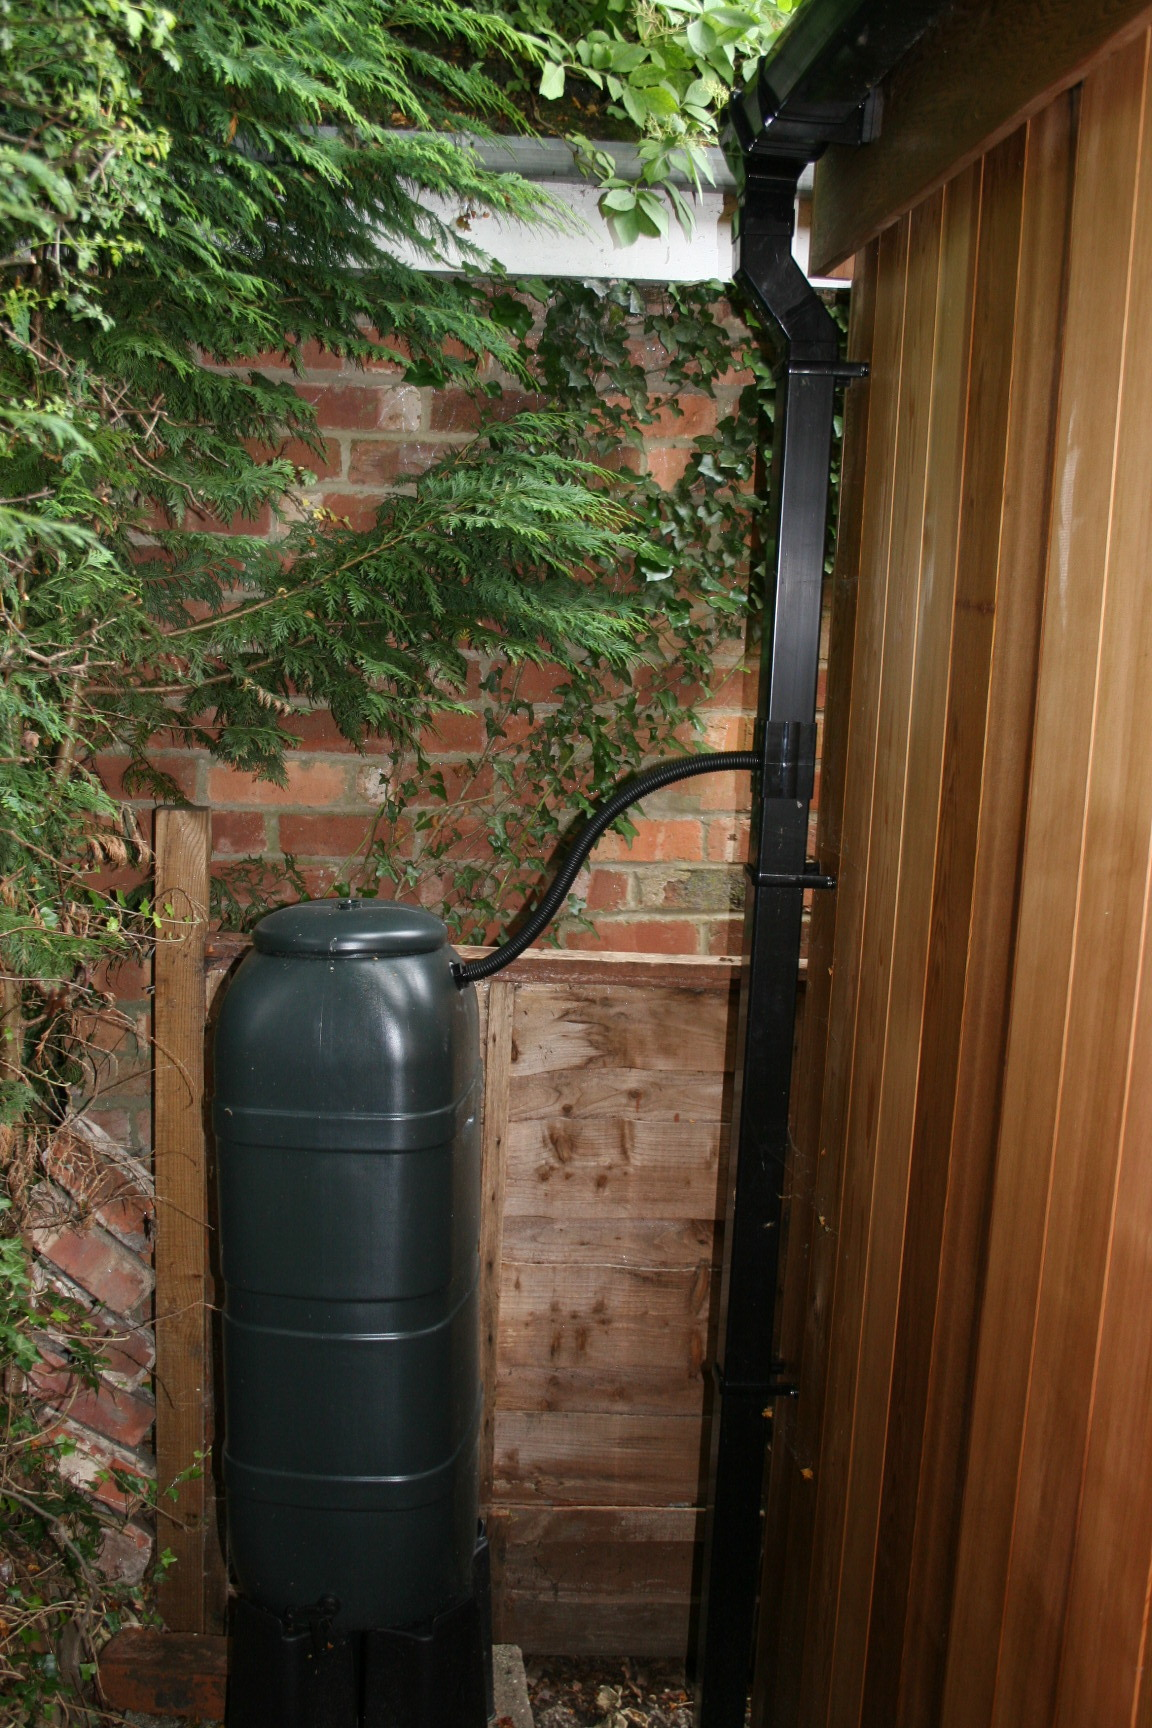 Rainwater Management - As standard:We install a full-length rear drip trim to all of our garden rooms. This distributes the roof surface rainwater across the full length of the rear of your garden room and clear of your rear cladding. This is an effective method for managing rainwater fall in most circumstance.As an option:We can install a full-length rear gutter profile, downpipe and a water butt to collect the roof surface rainwater runoff. A water butt is always required with a gutter and downpipe to prevent concentrated water flow onto the ground unless there is a drain present.